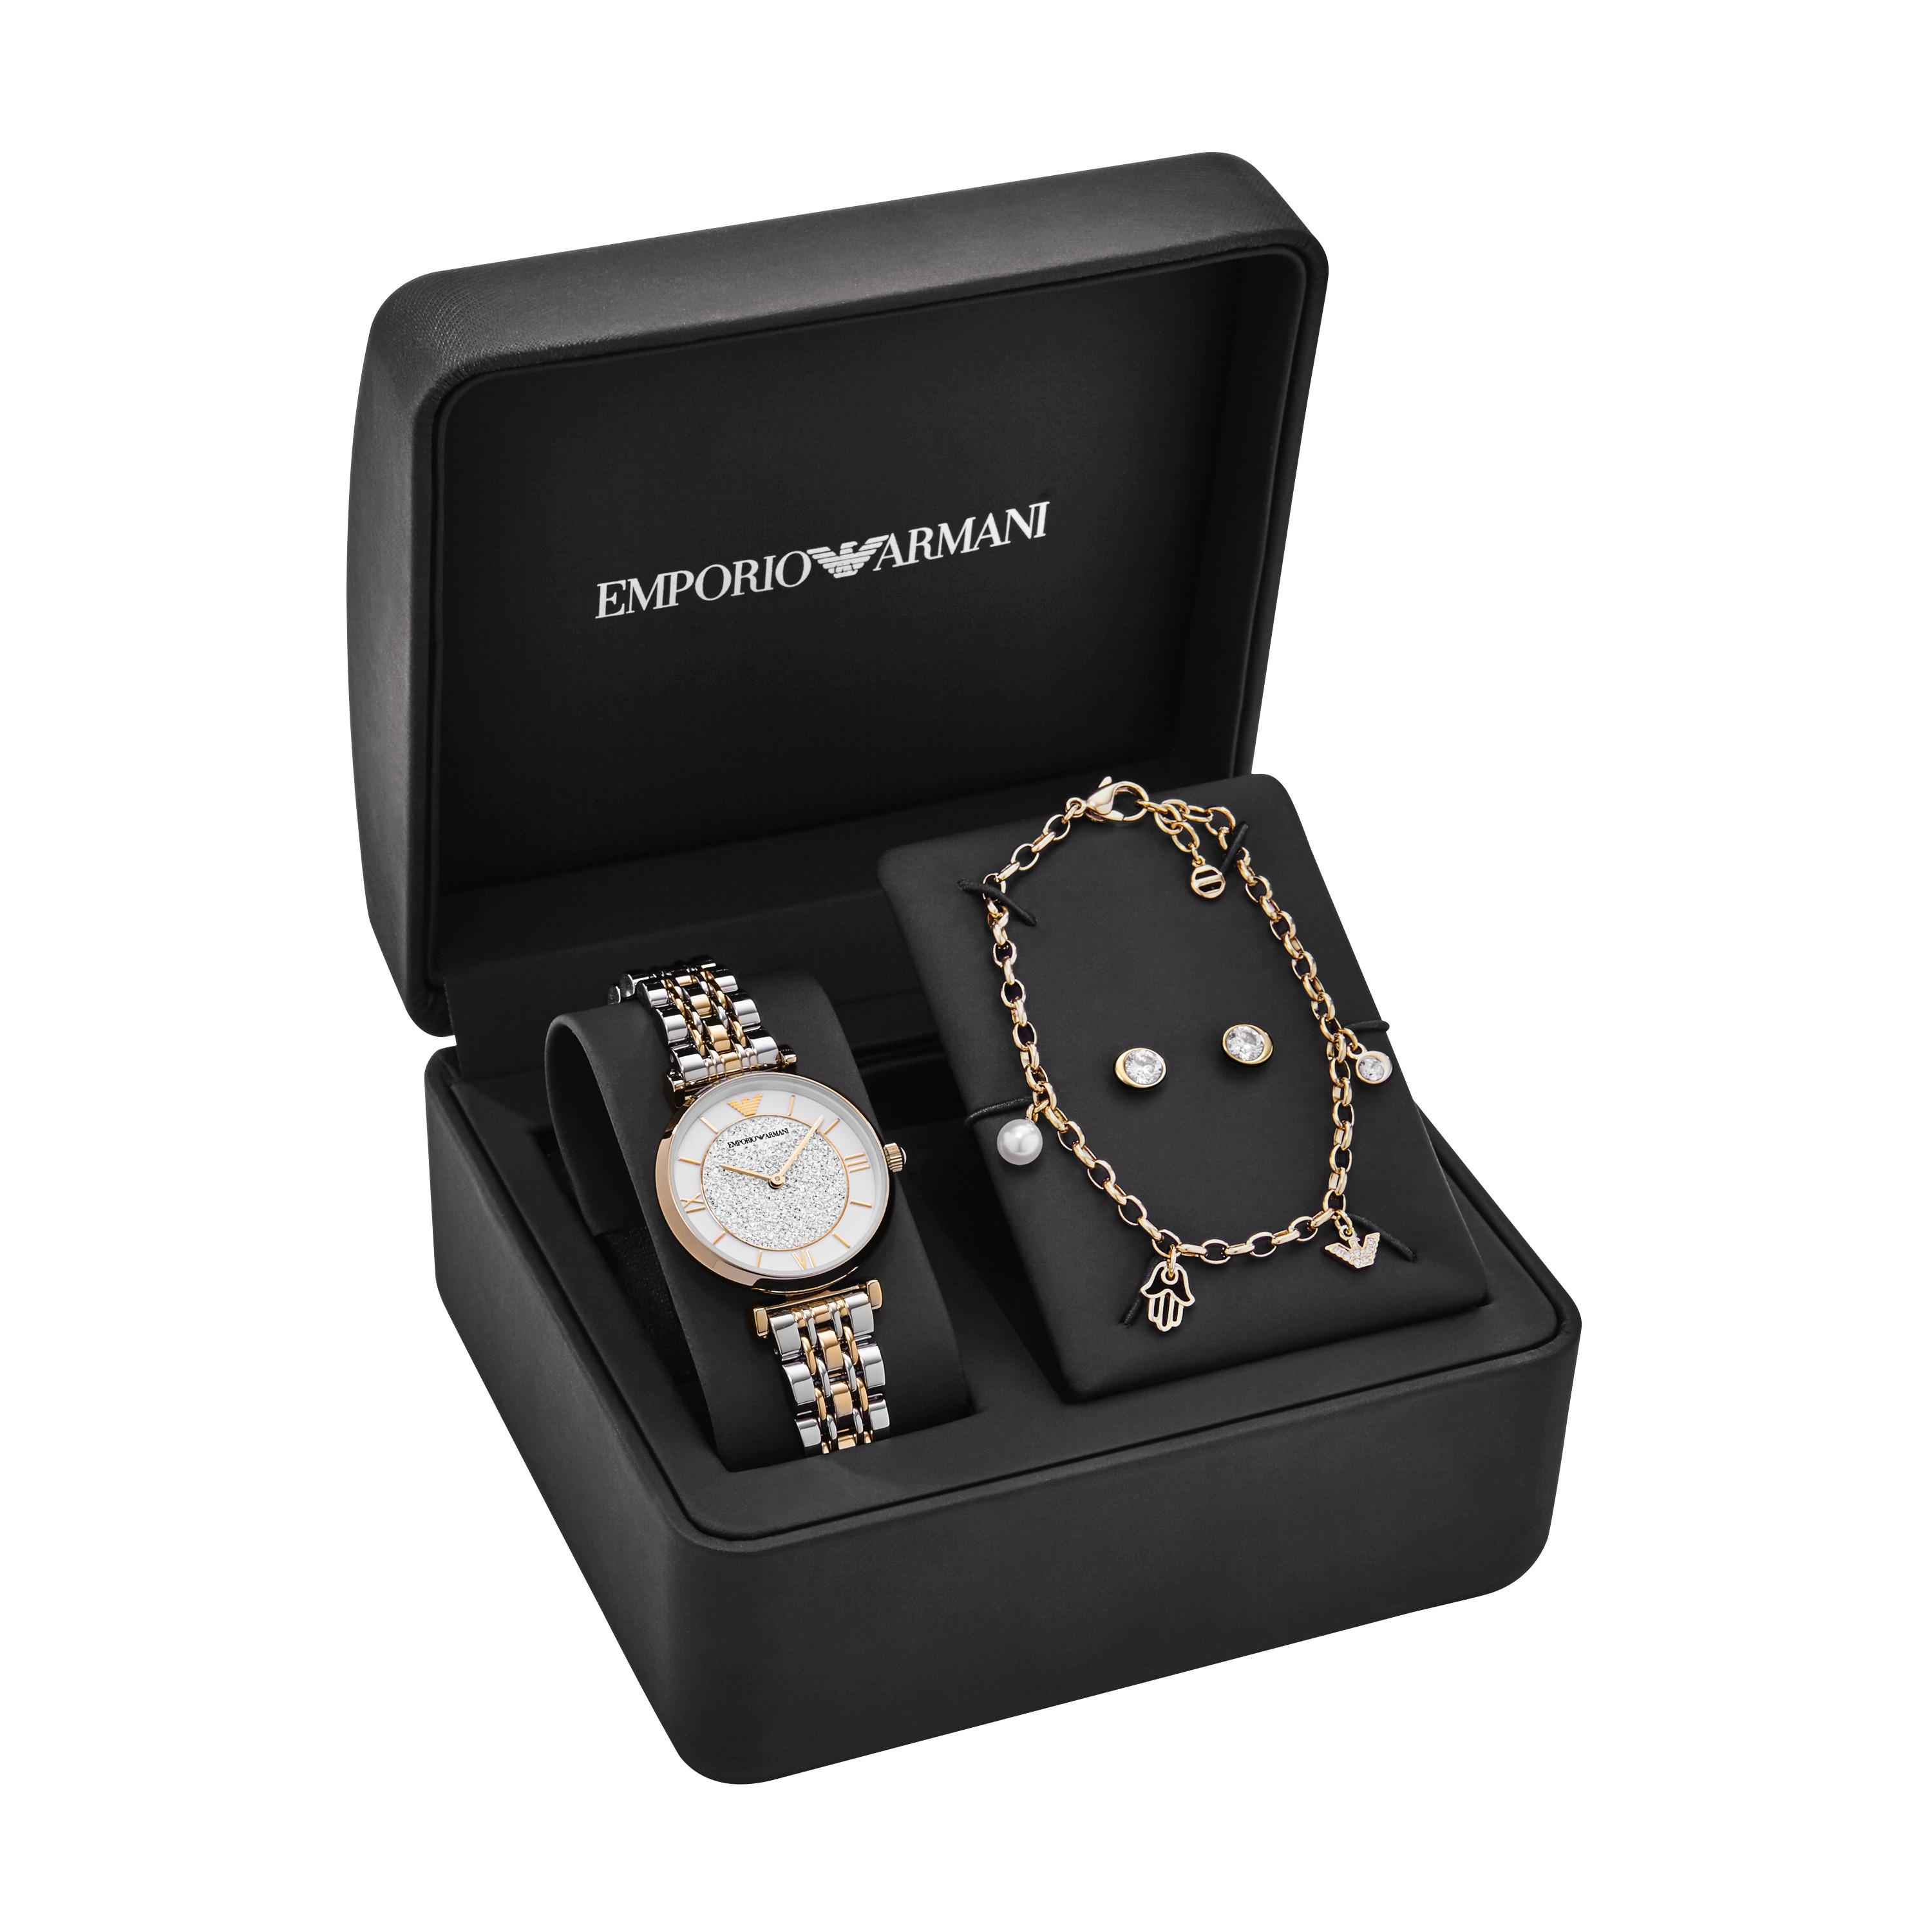 Emporio armani and watch shop pair up to create eid gift sets ar686919 negle Images